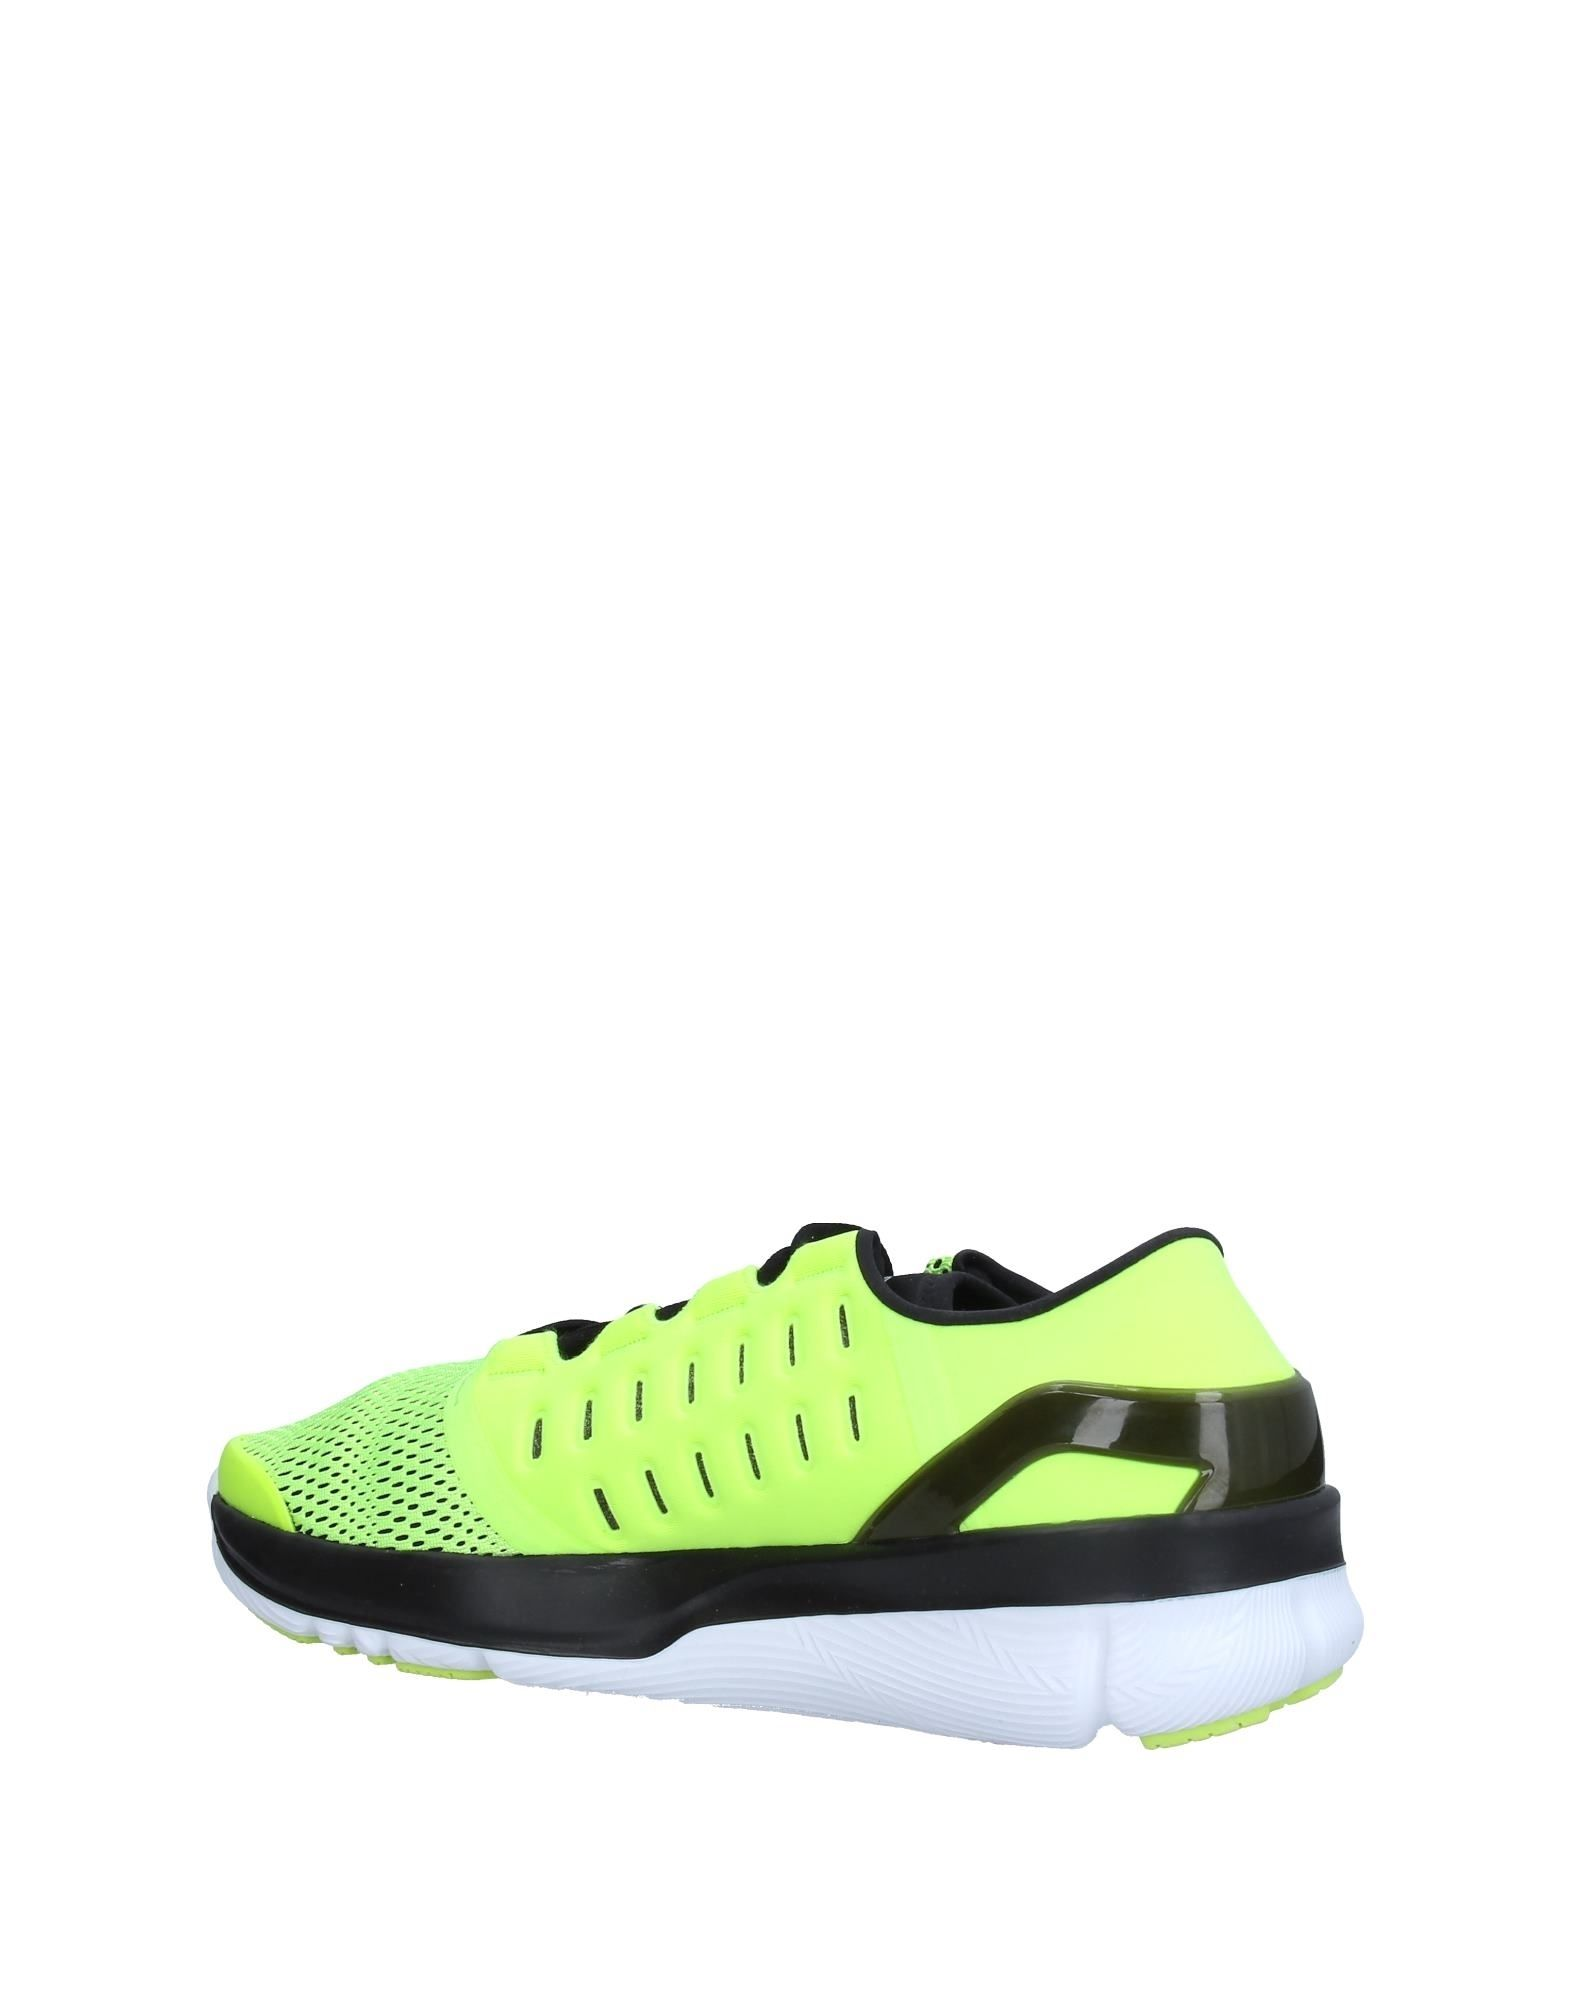 Sneakers Under Armour Homme - Sneakers Under Armour sur